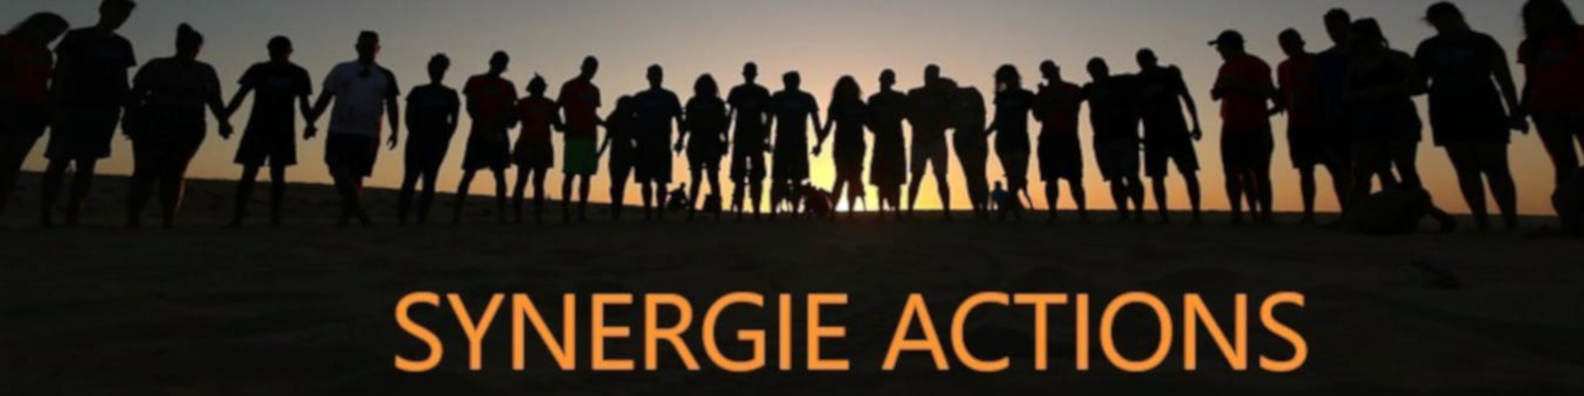 Synergie Actions formations Auvergne Rhône Alpes